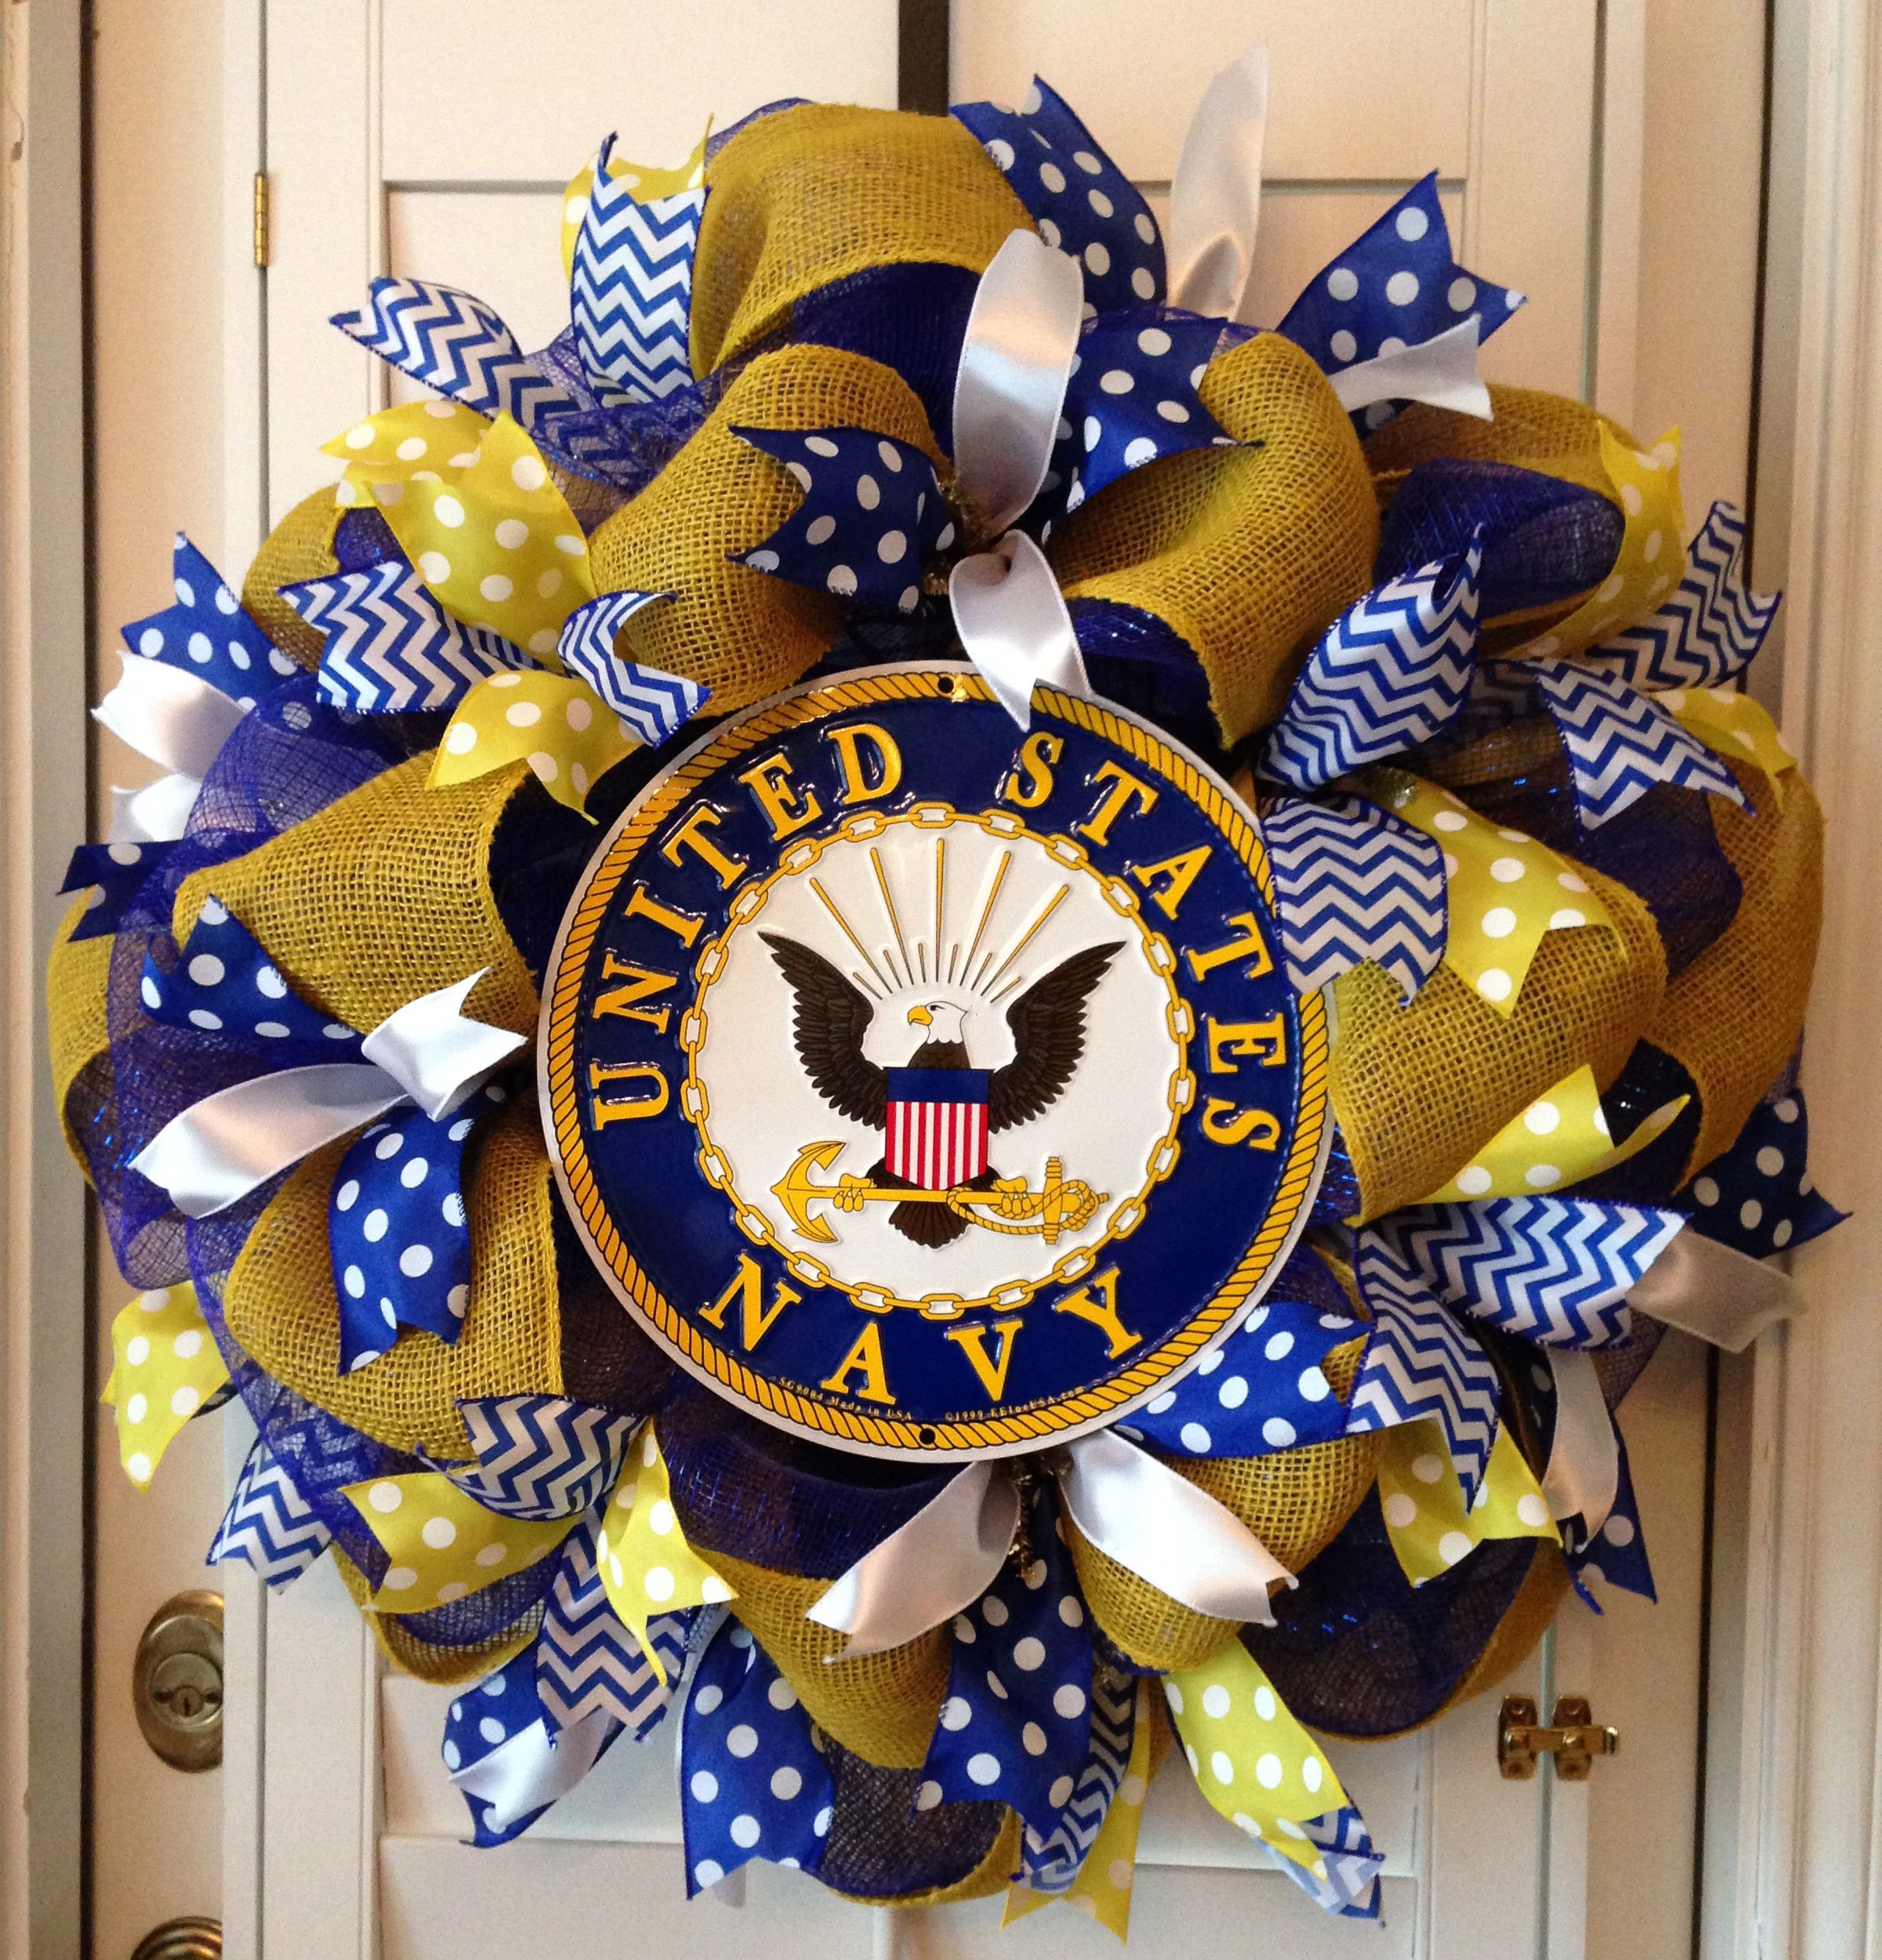 United States Navy Deco Mesh Wreath Blue Gold White Military